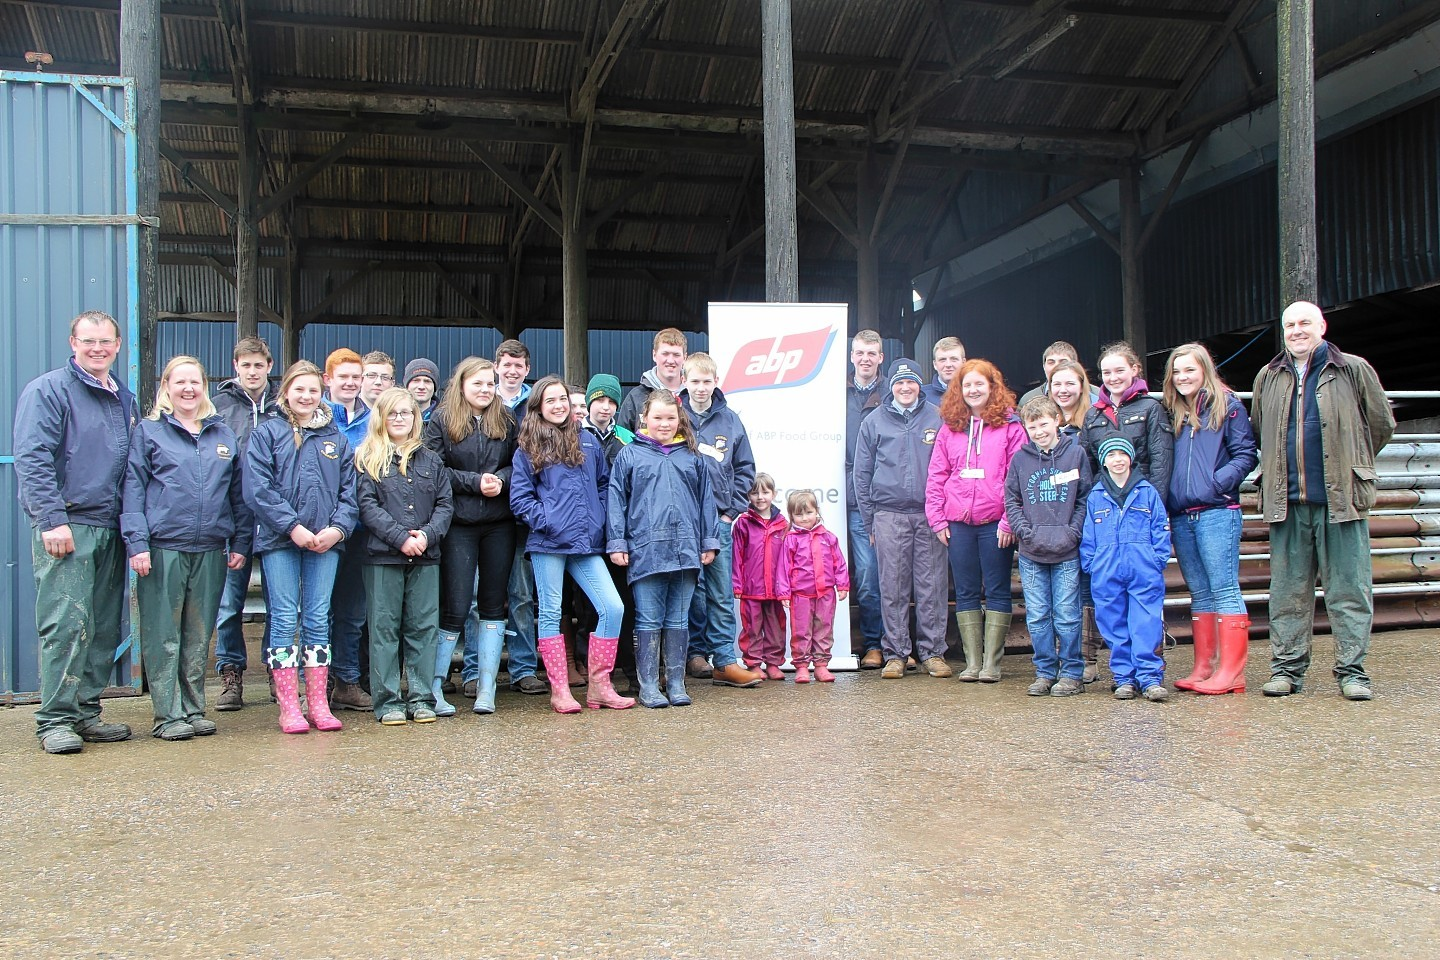 The youngsters at the Charolais stockjudging event